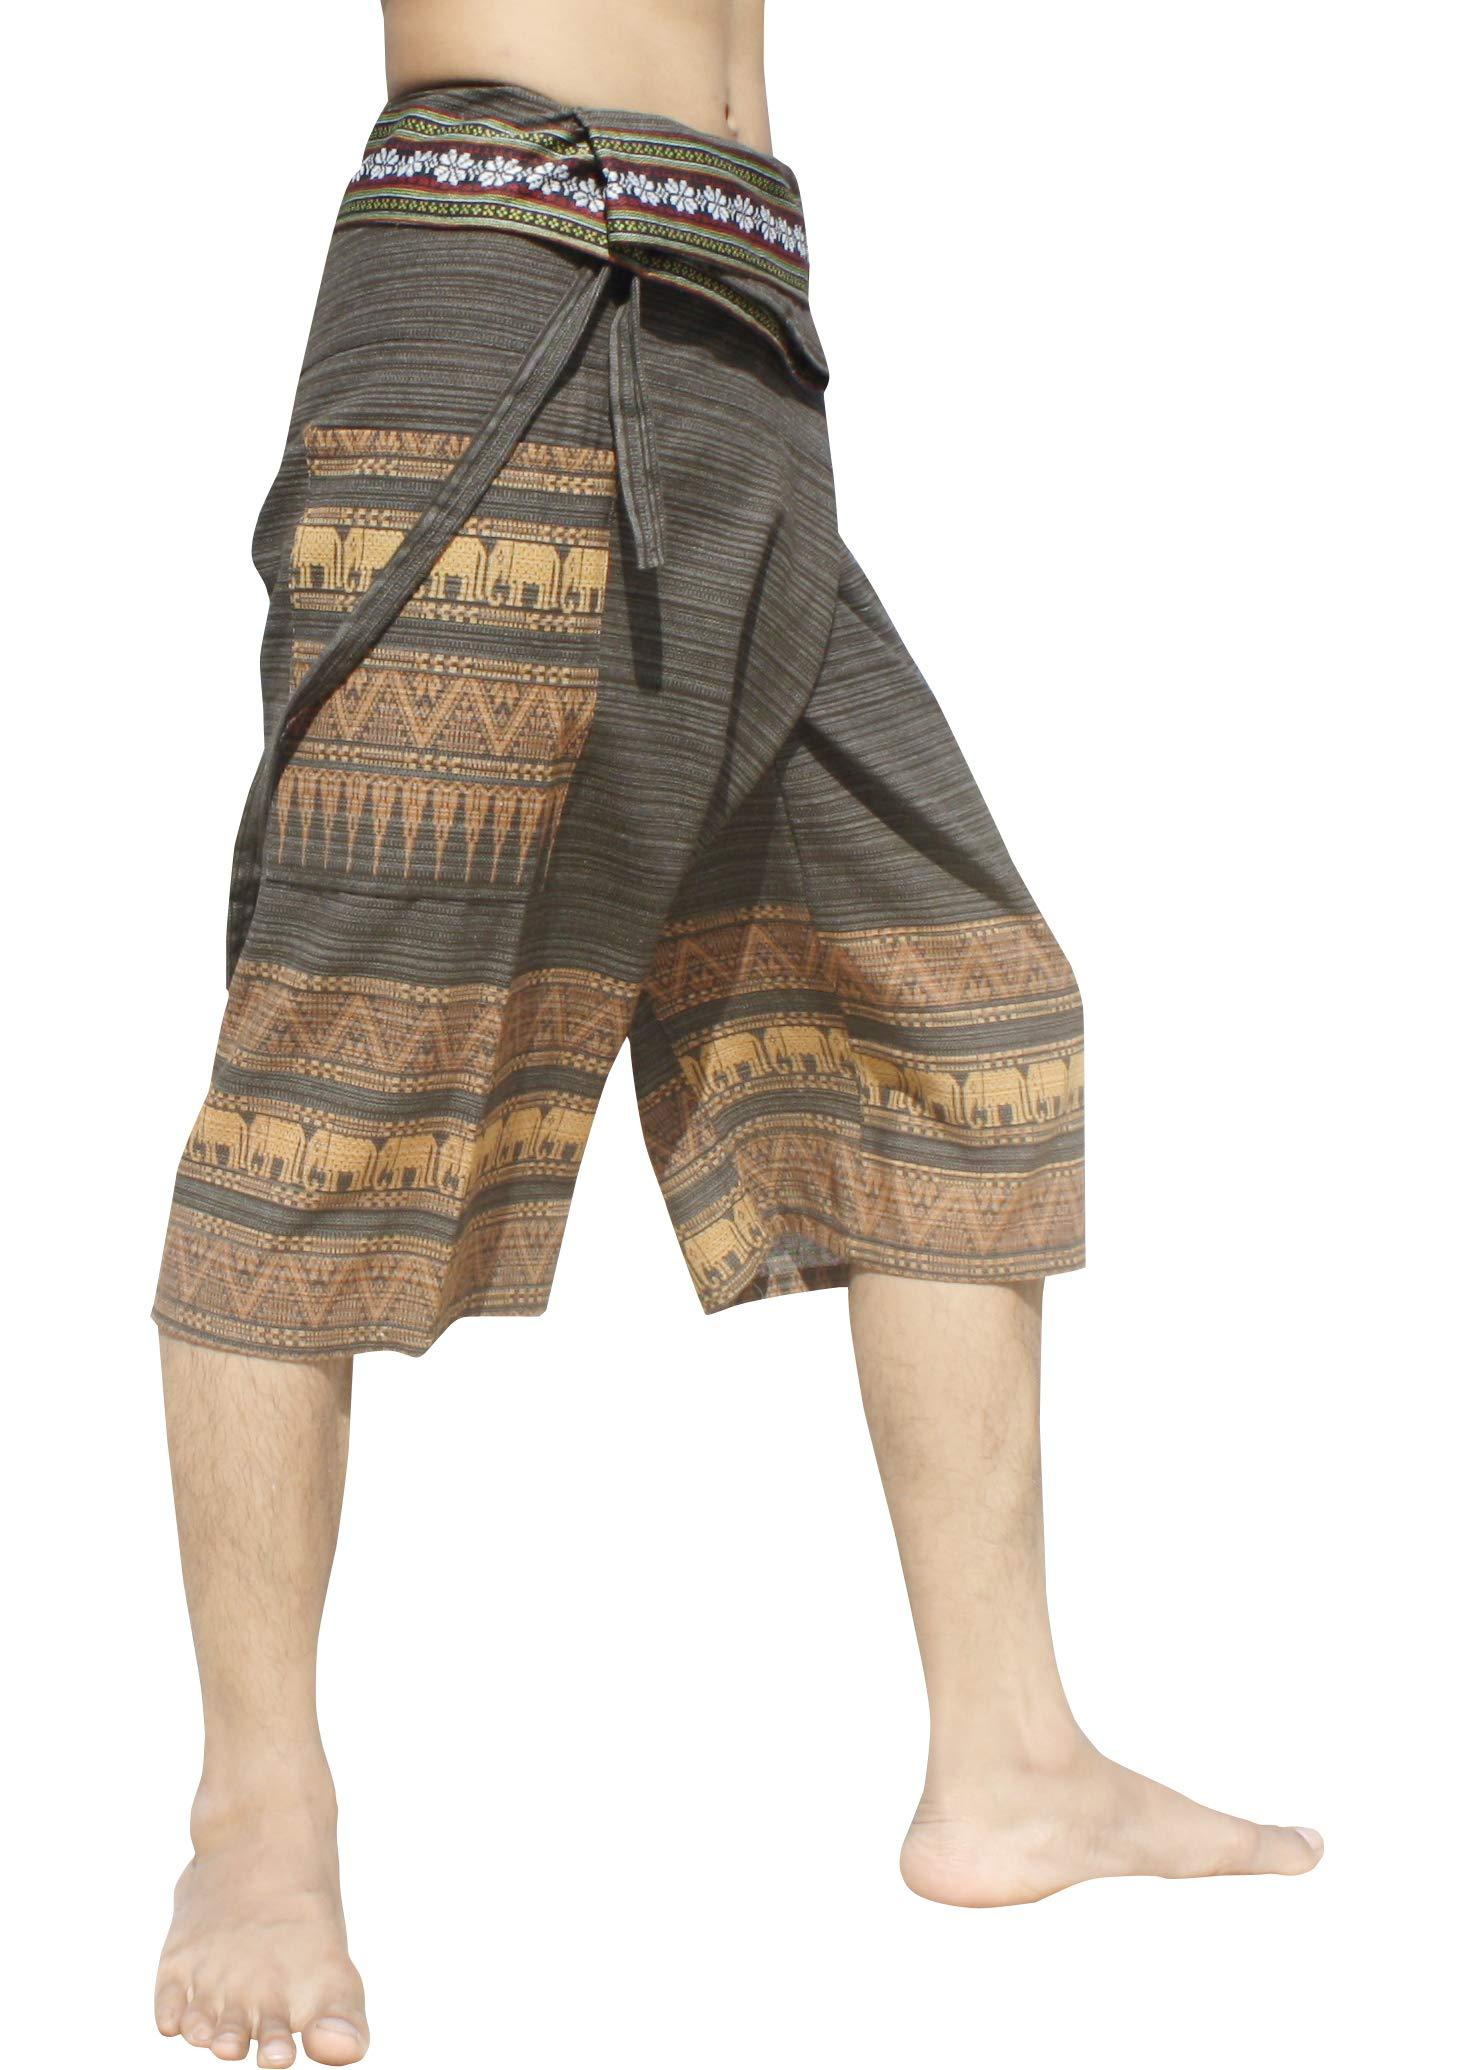 RaanPahMuang Stripe Cotton Fisherman Shorts North Thai Woodblock Artwork and Belt Art, S/M, Gray by RaanPahMuang